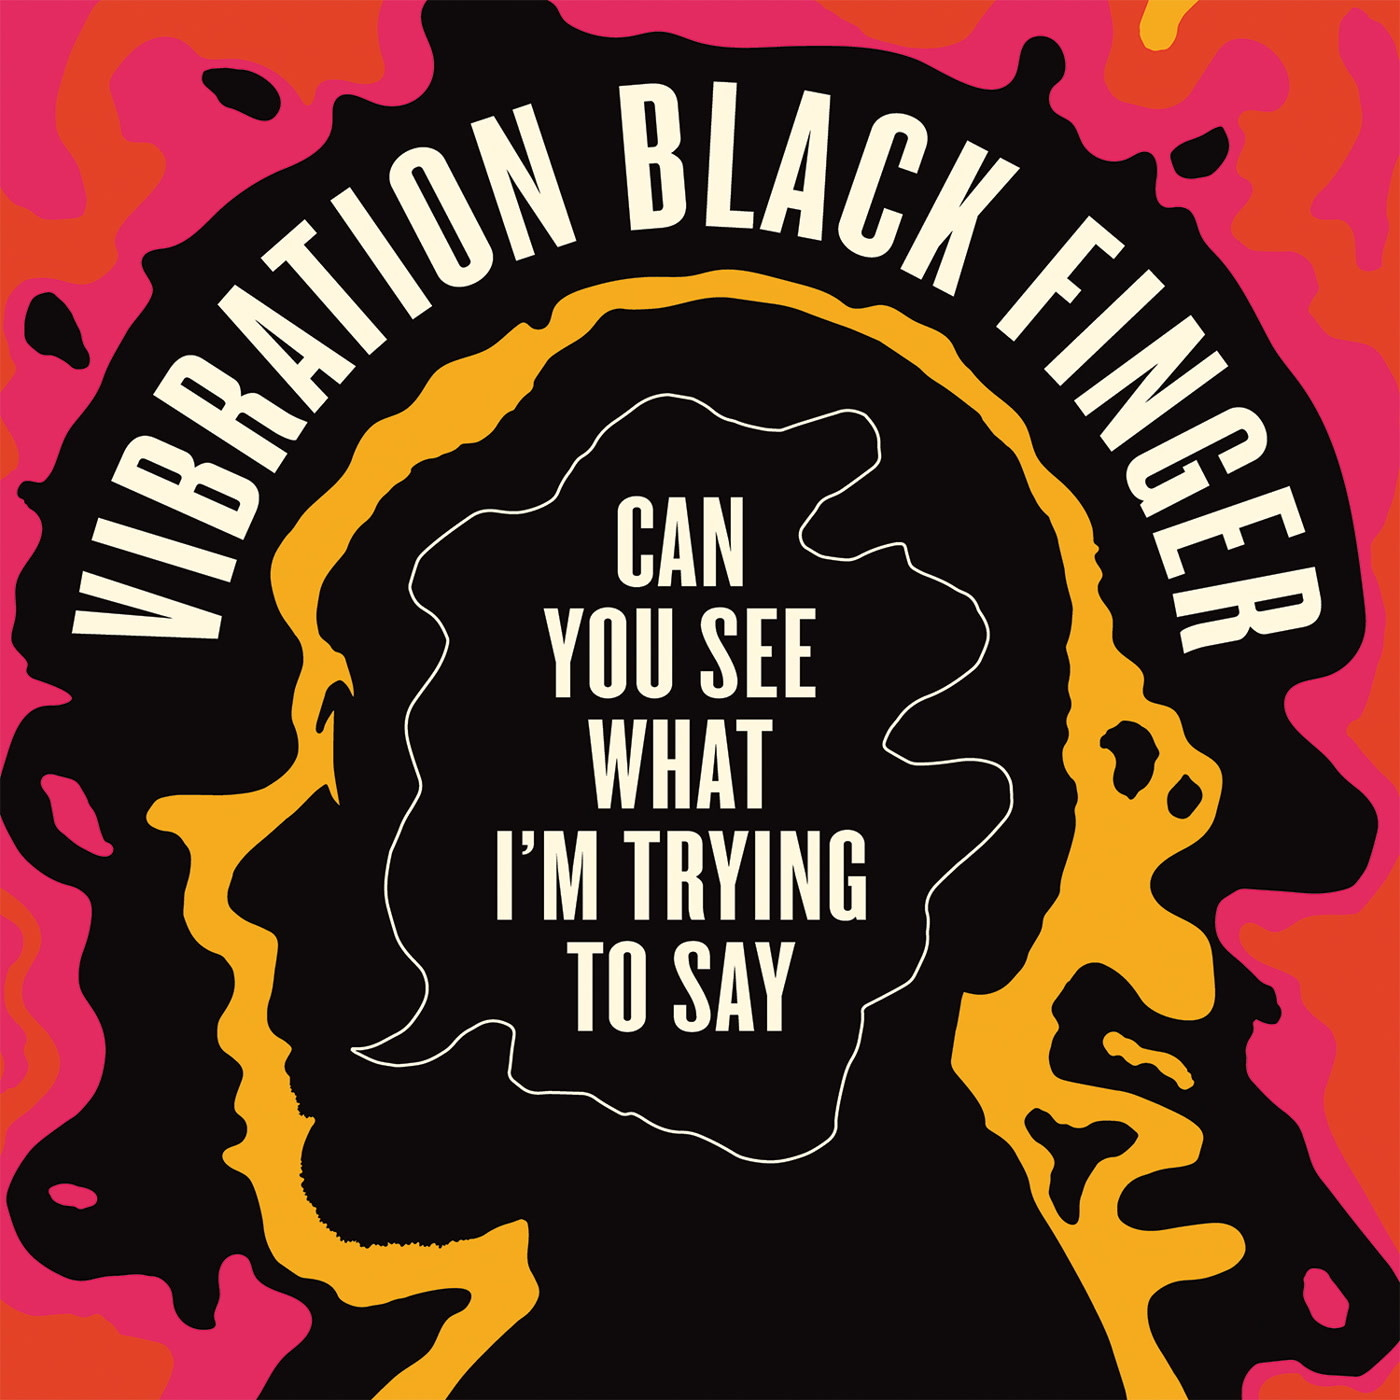 Jazzman Vibration Black Finger - Can You See What I'm Trying to Say